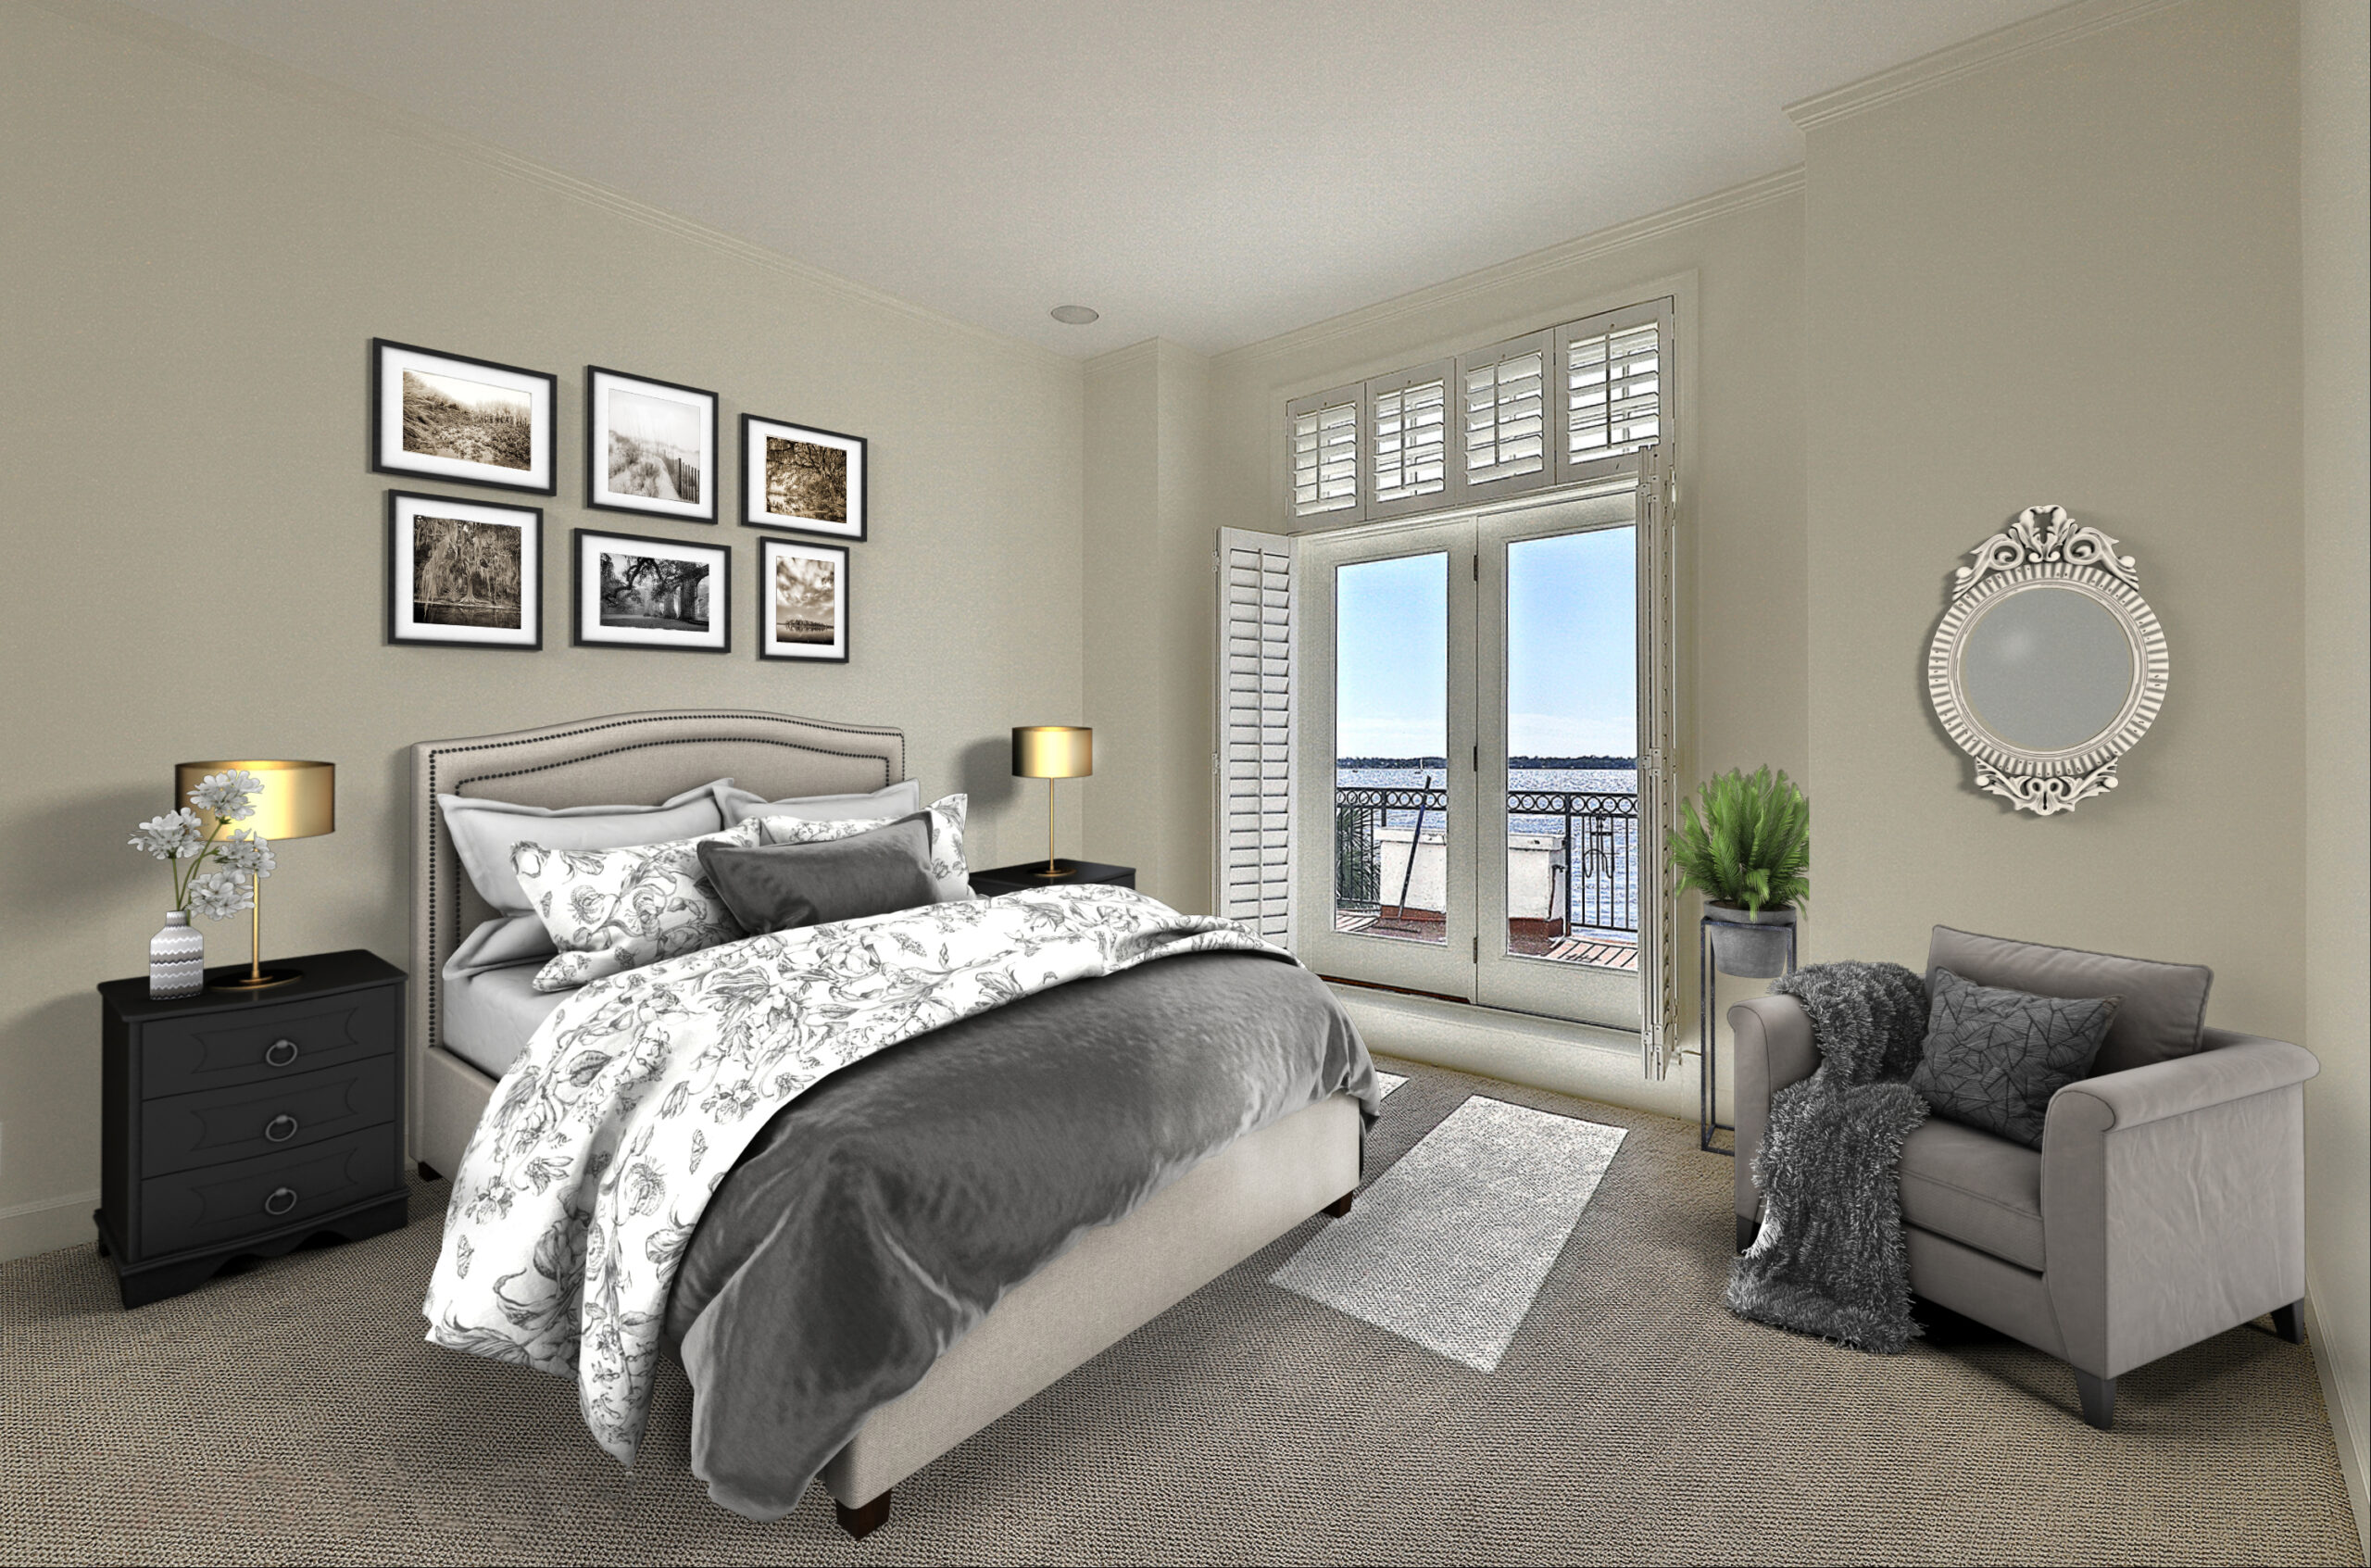 Virtual Staging Condo Bedroom AFTER